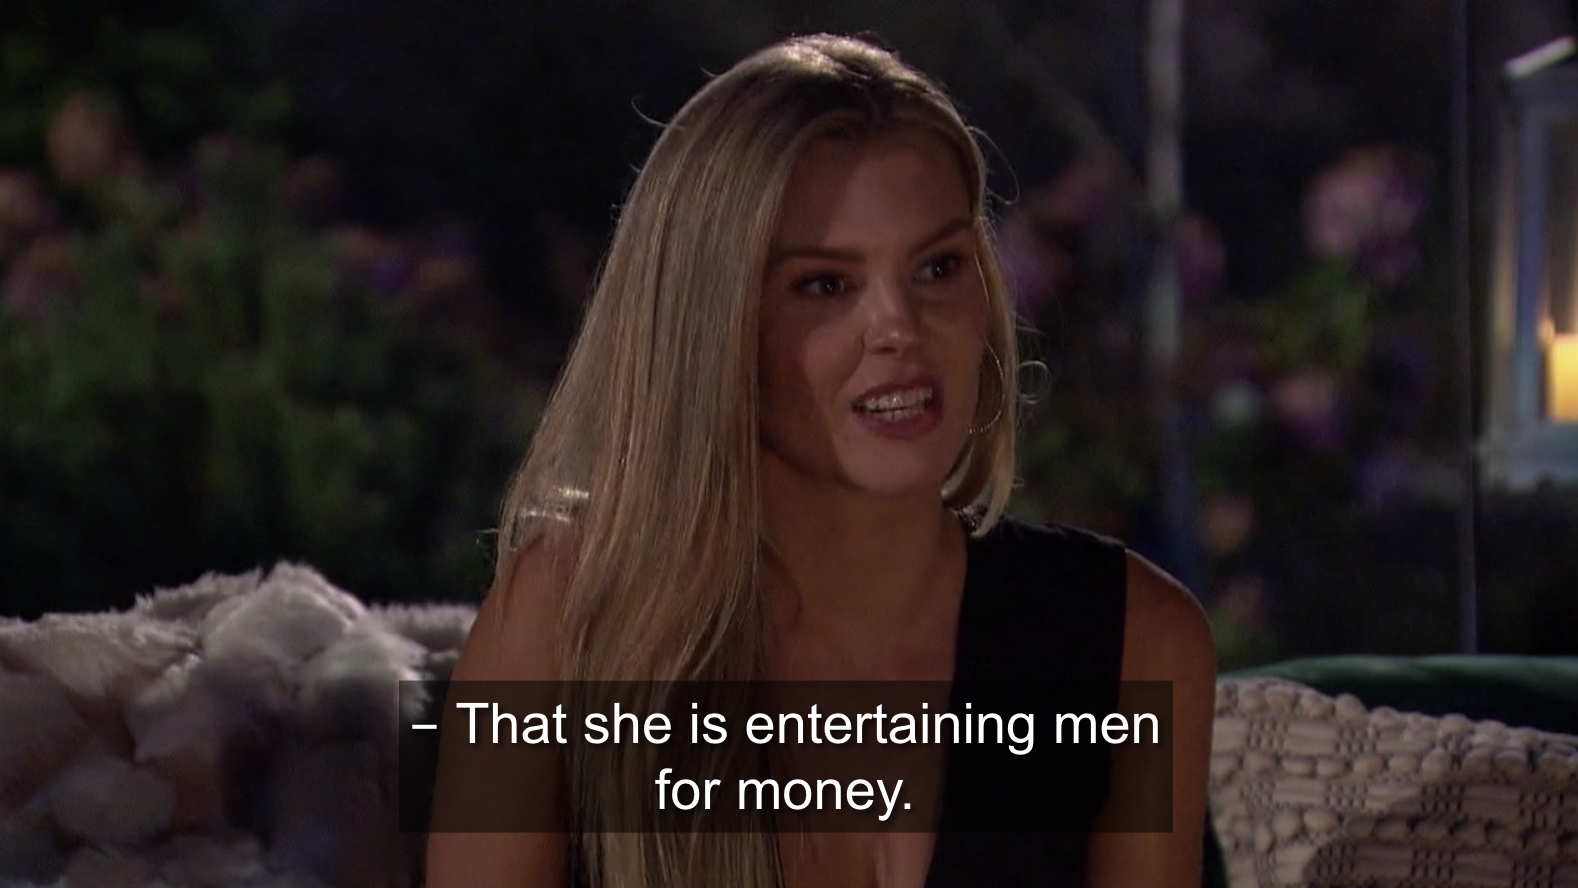 Anna saying that Brittany is entertaining men for money